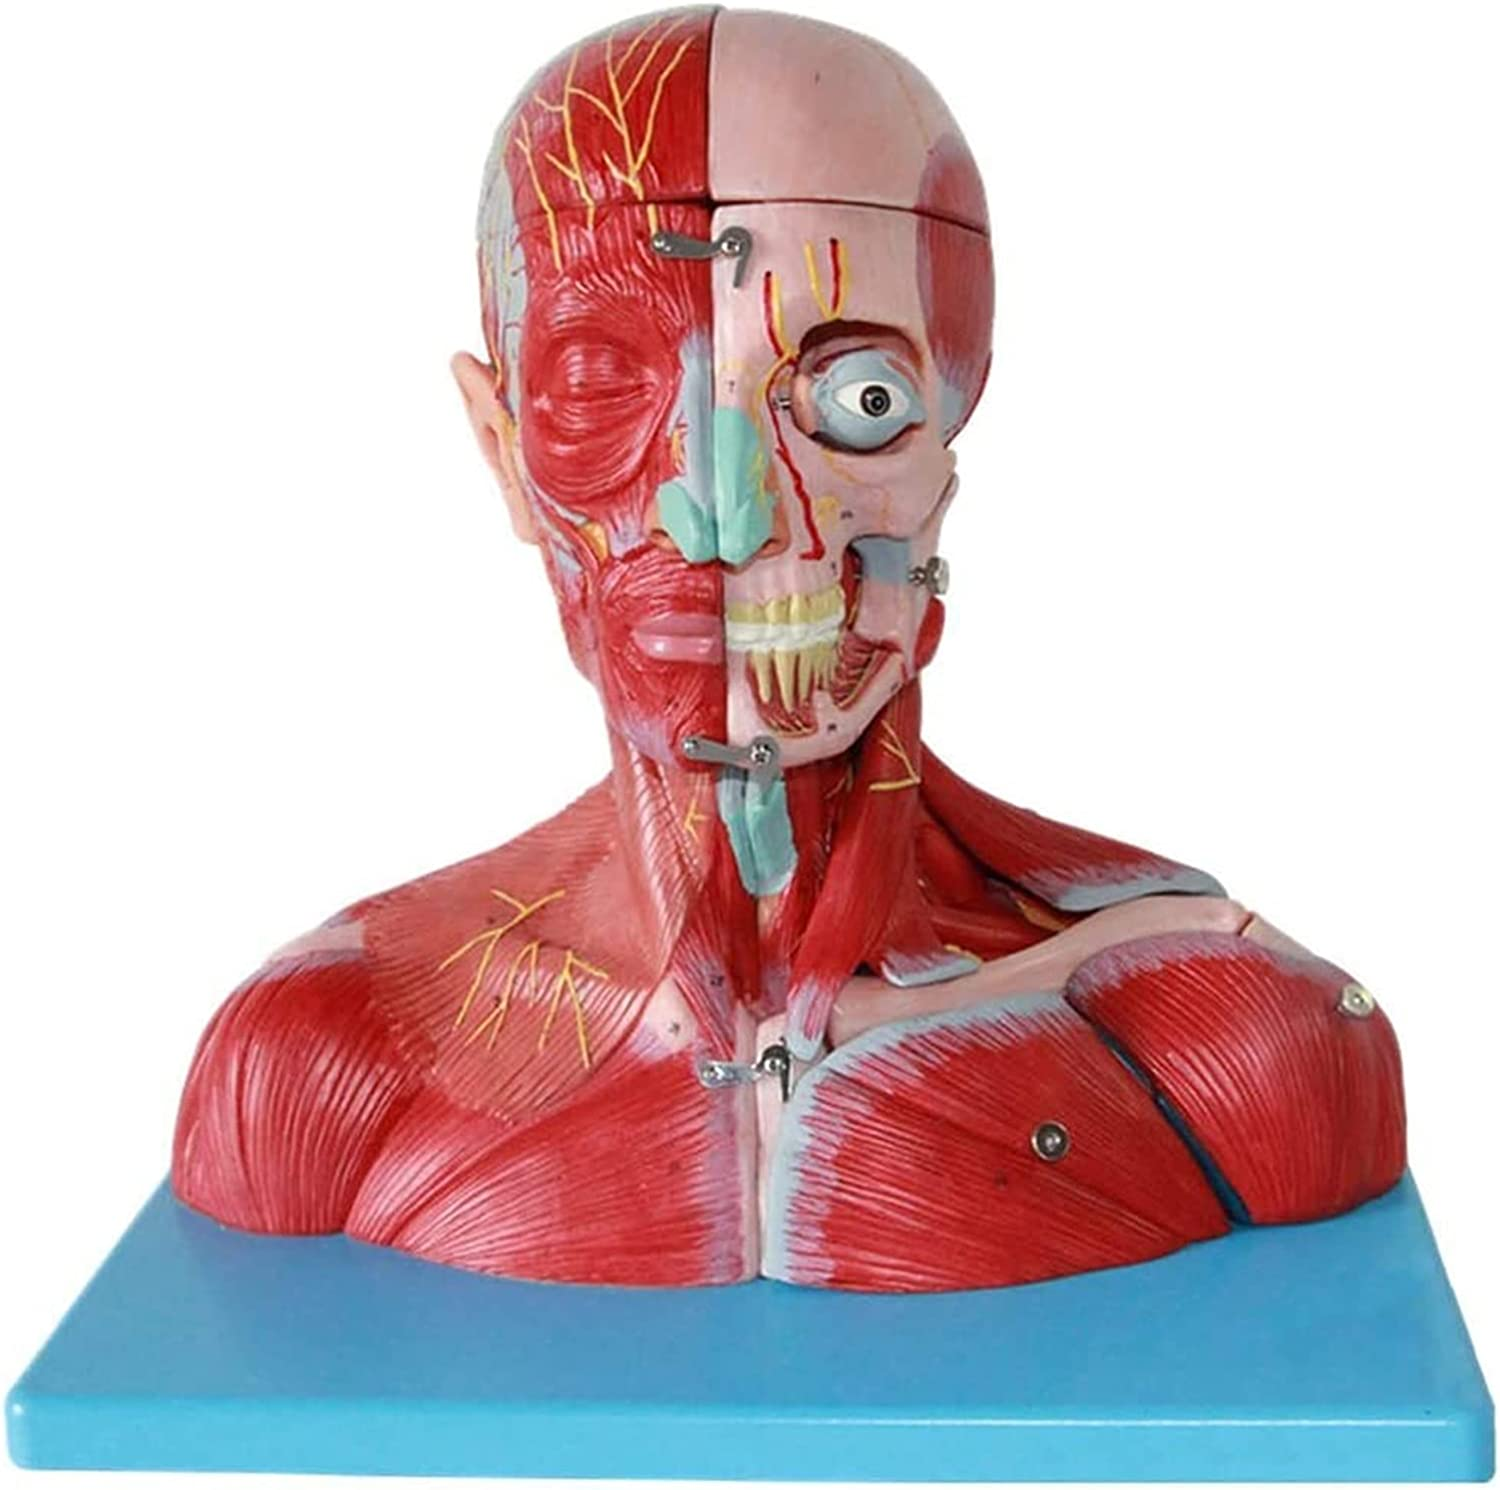 Neck Muscle 1 year warranty Model Vascular Max 55% OFF Nerve Detachable Attached Brain